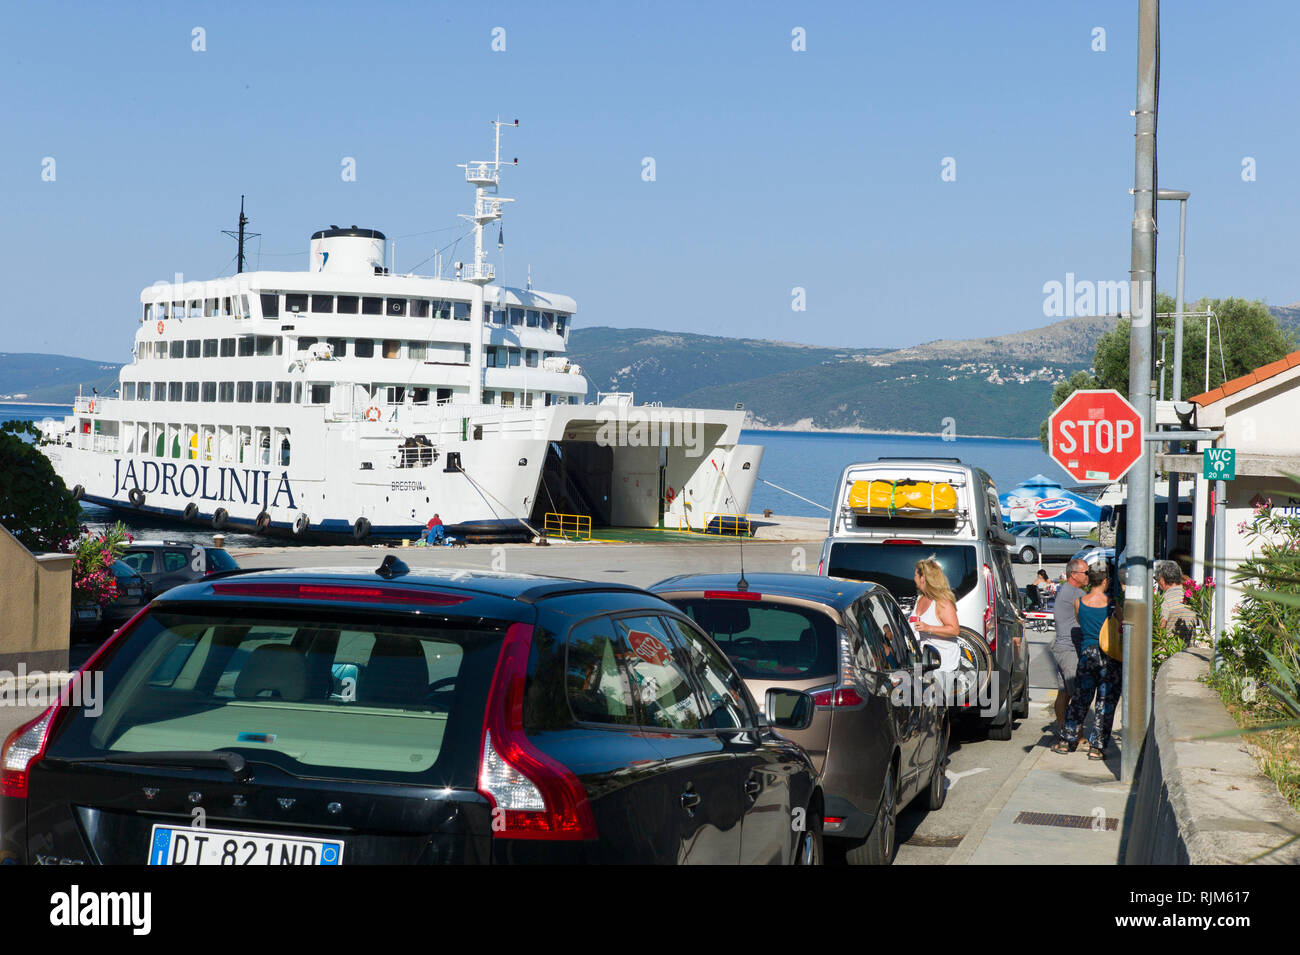 Car waiting for the ferry to take them to Brestova from Porozina on the island of Cres, Croatia - Stock Image